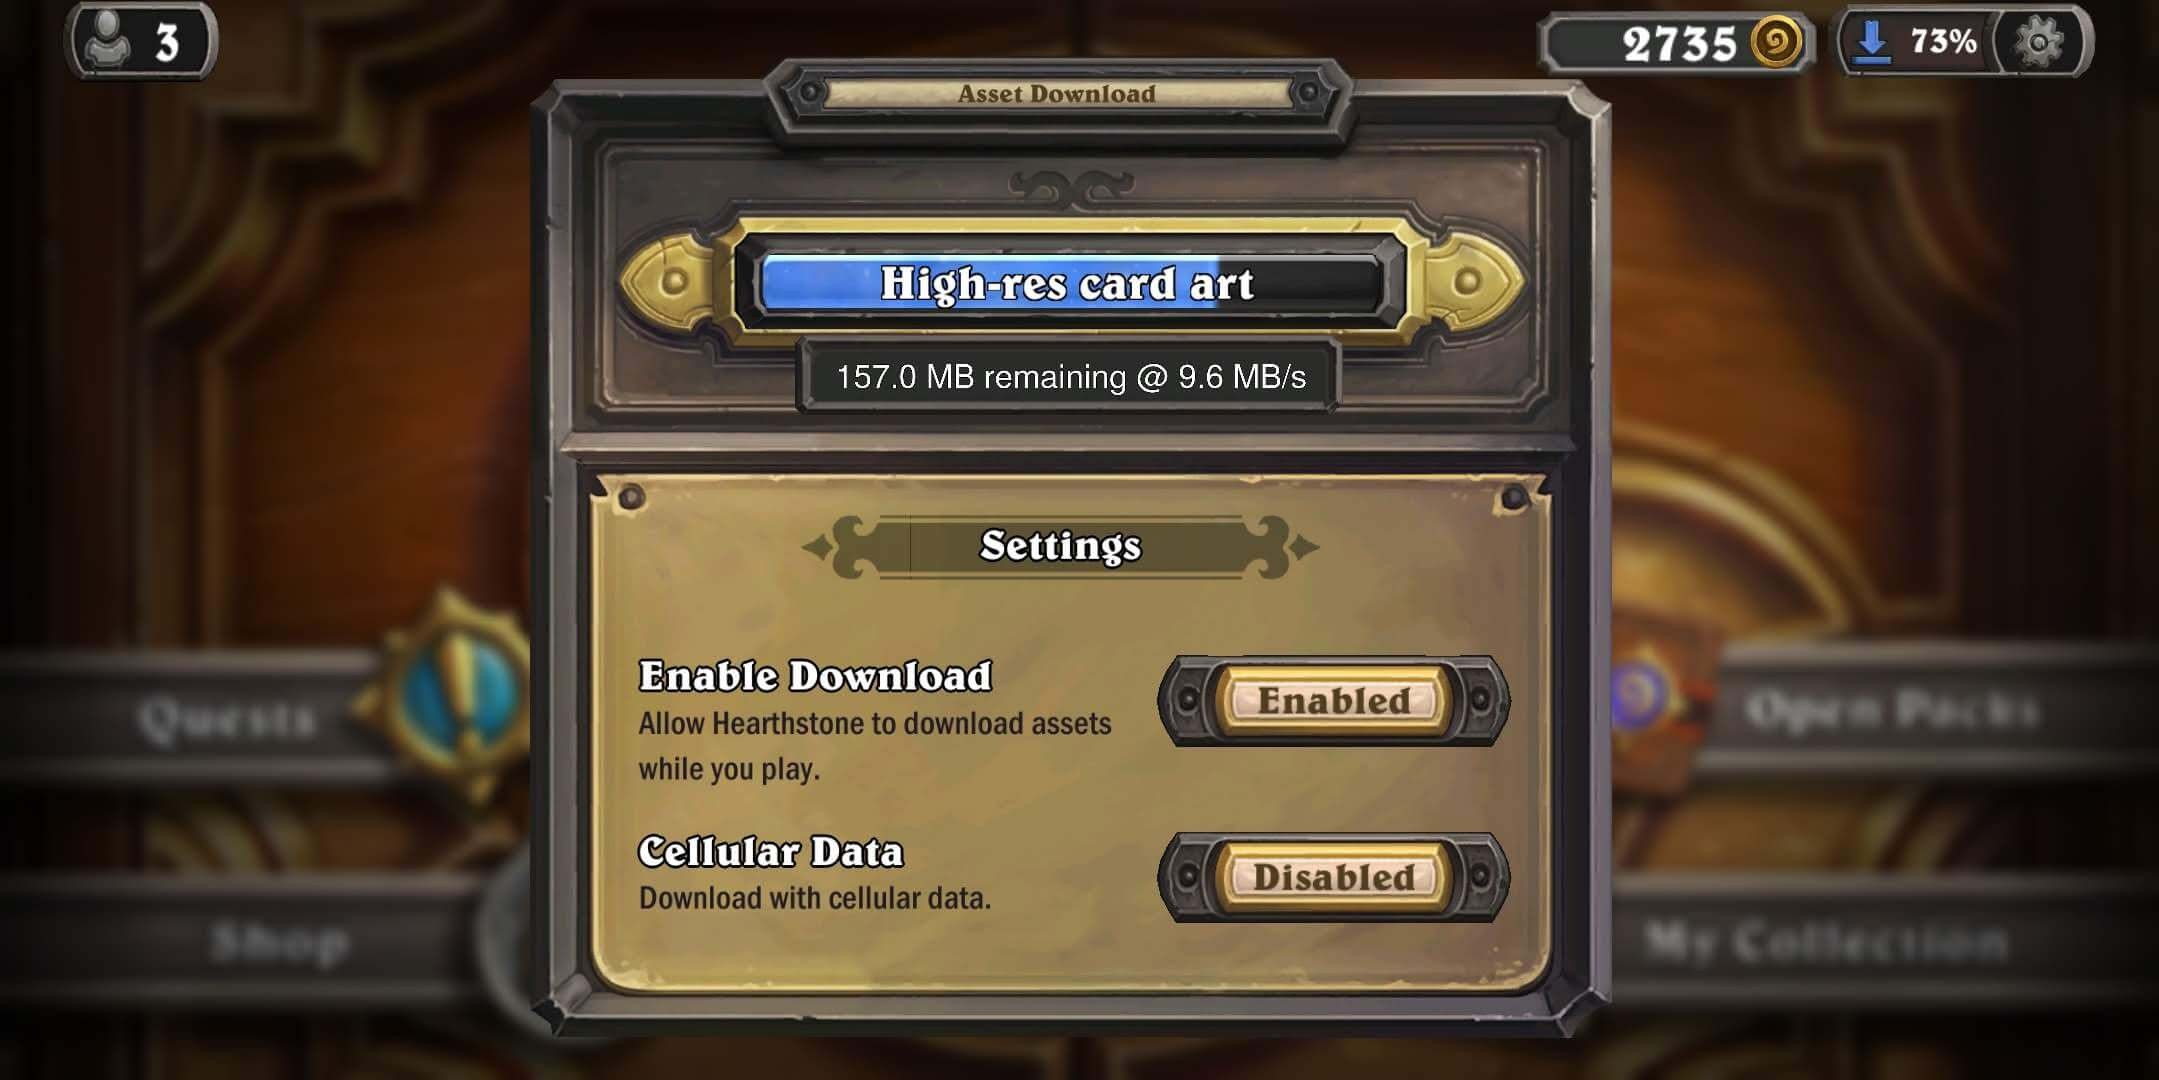 Hearthstone asset download